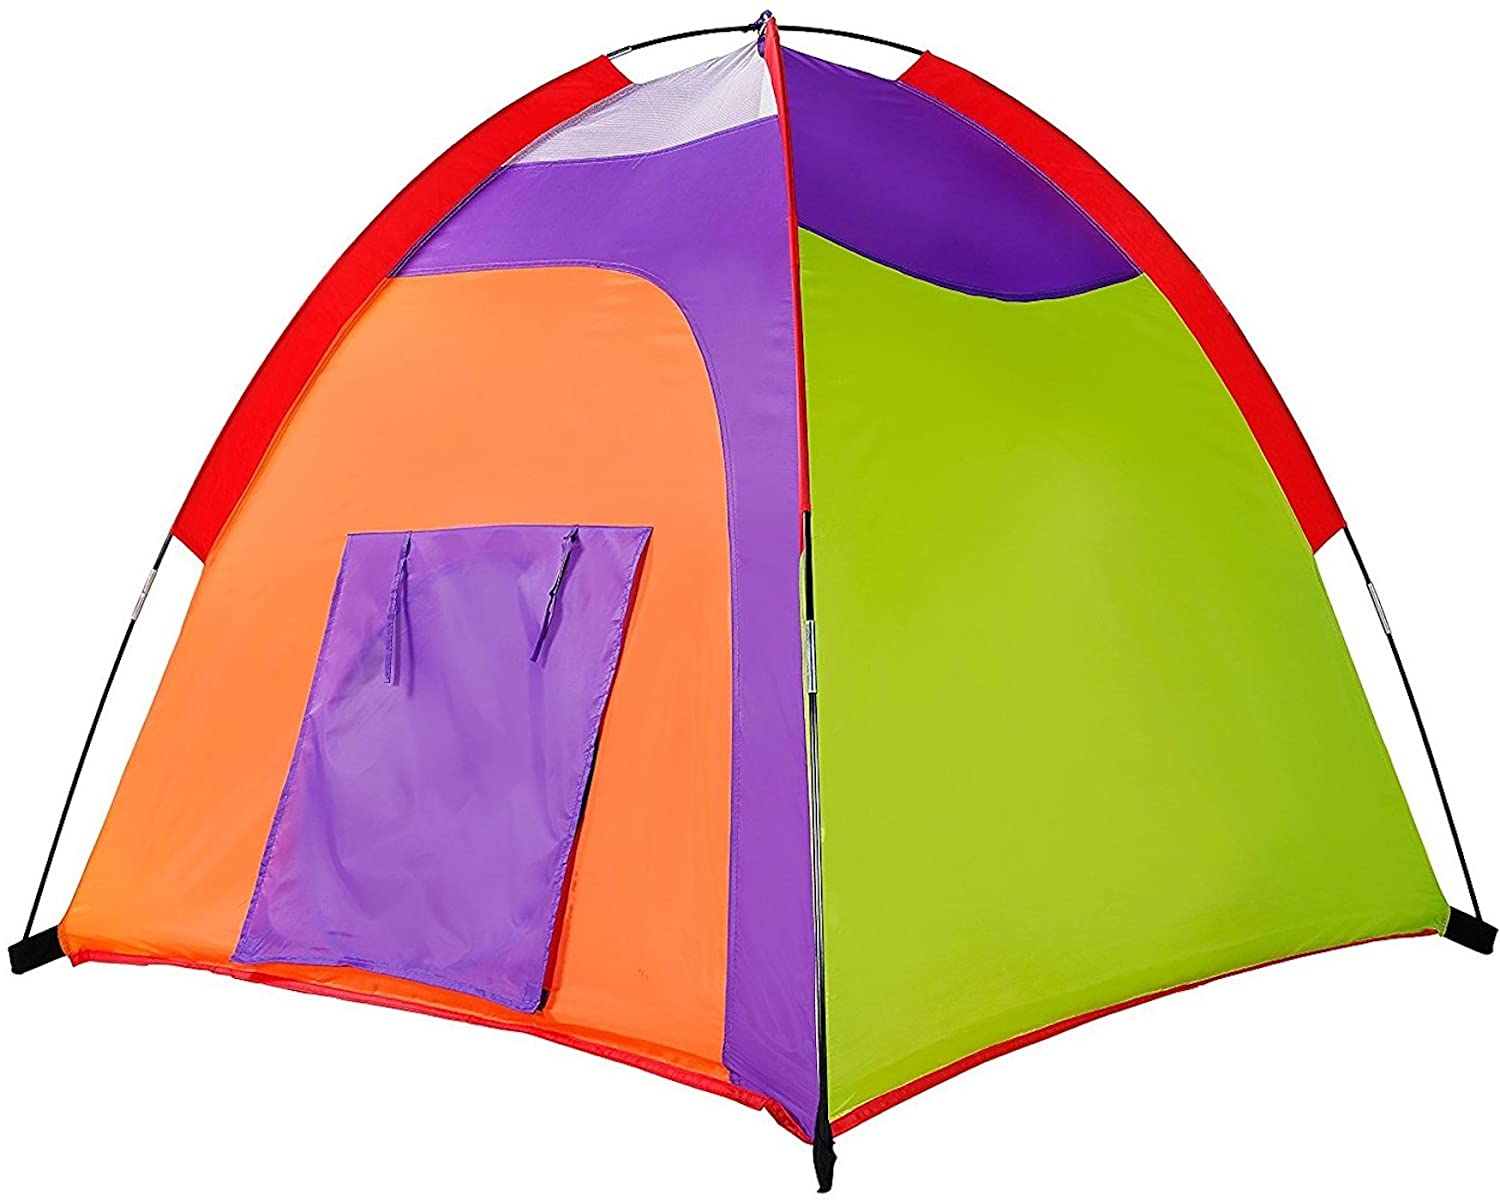 Alvantor Kids Tent Indoor Children Play Toy Toddler Pop up Outdoor Games Colourful Curvy Patent, Red, Orange,Purple,Green, 48